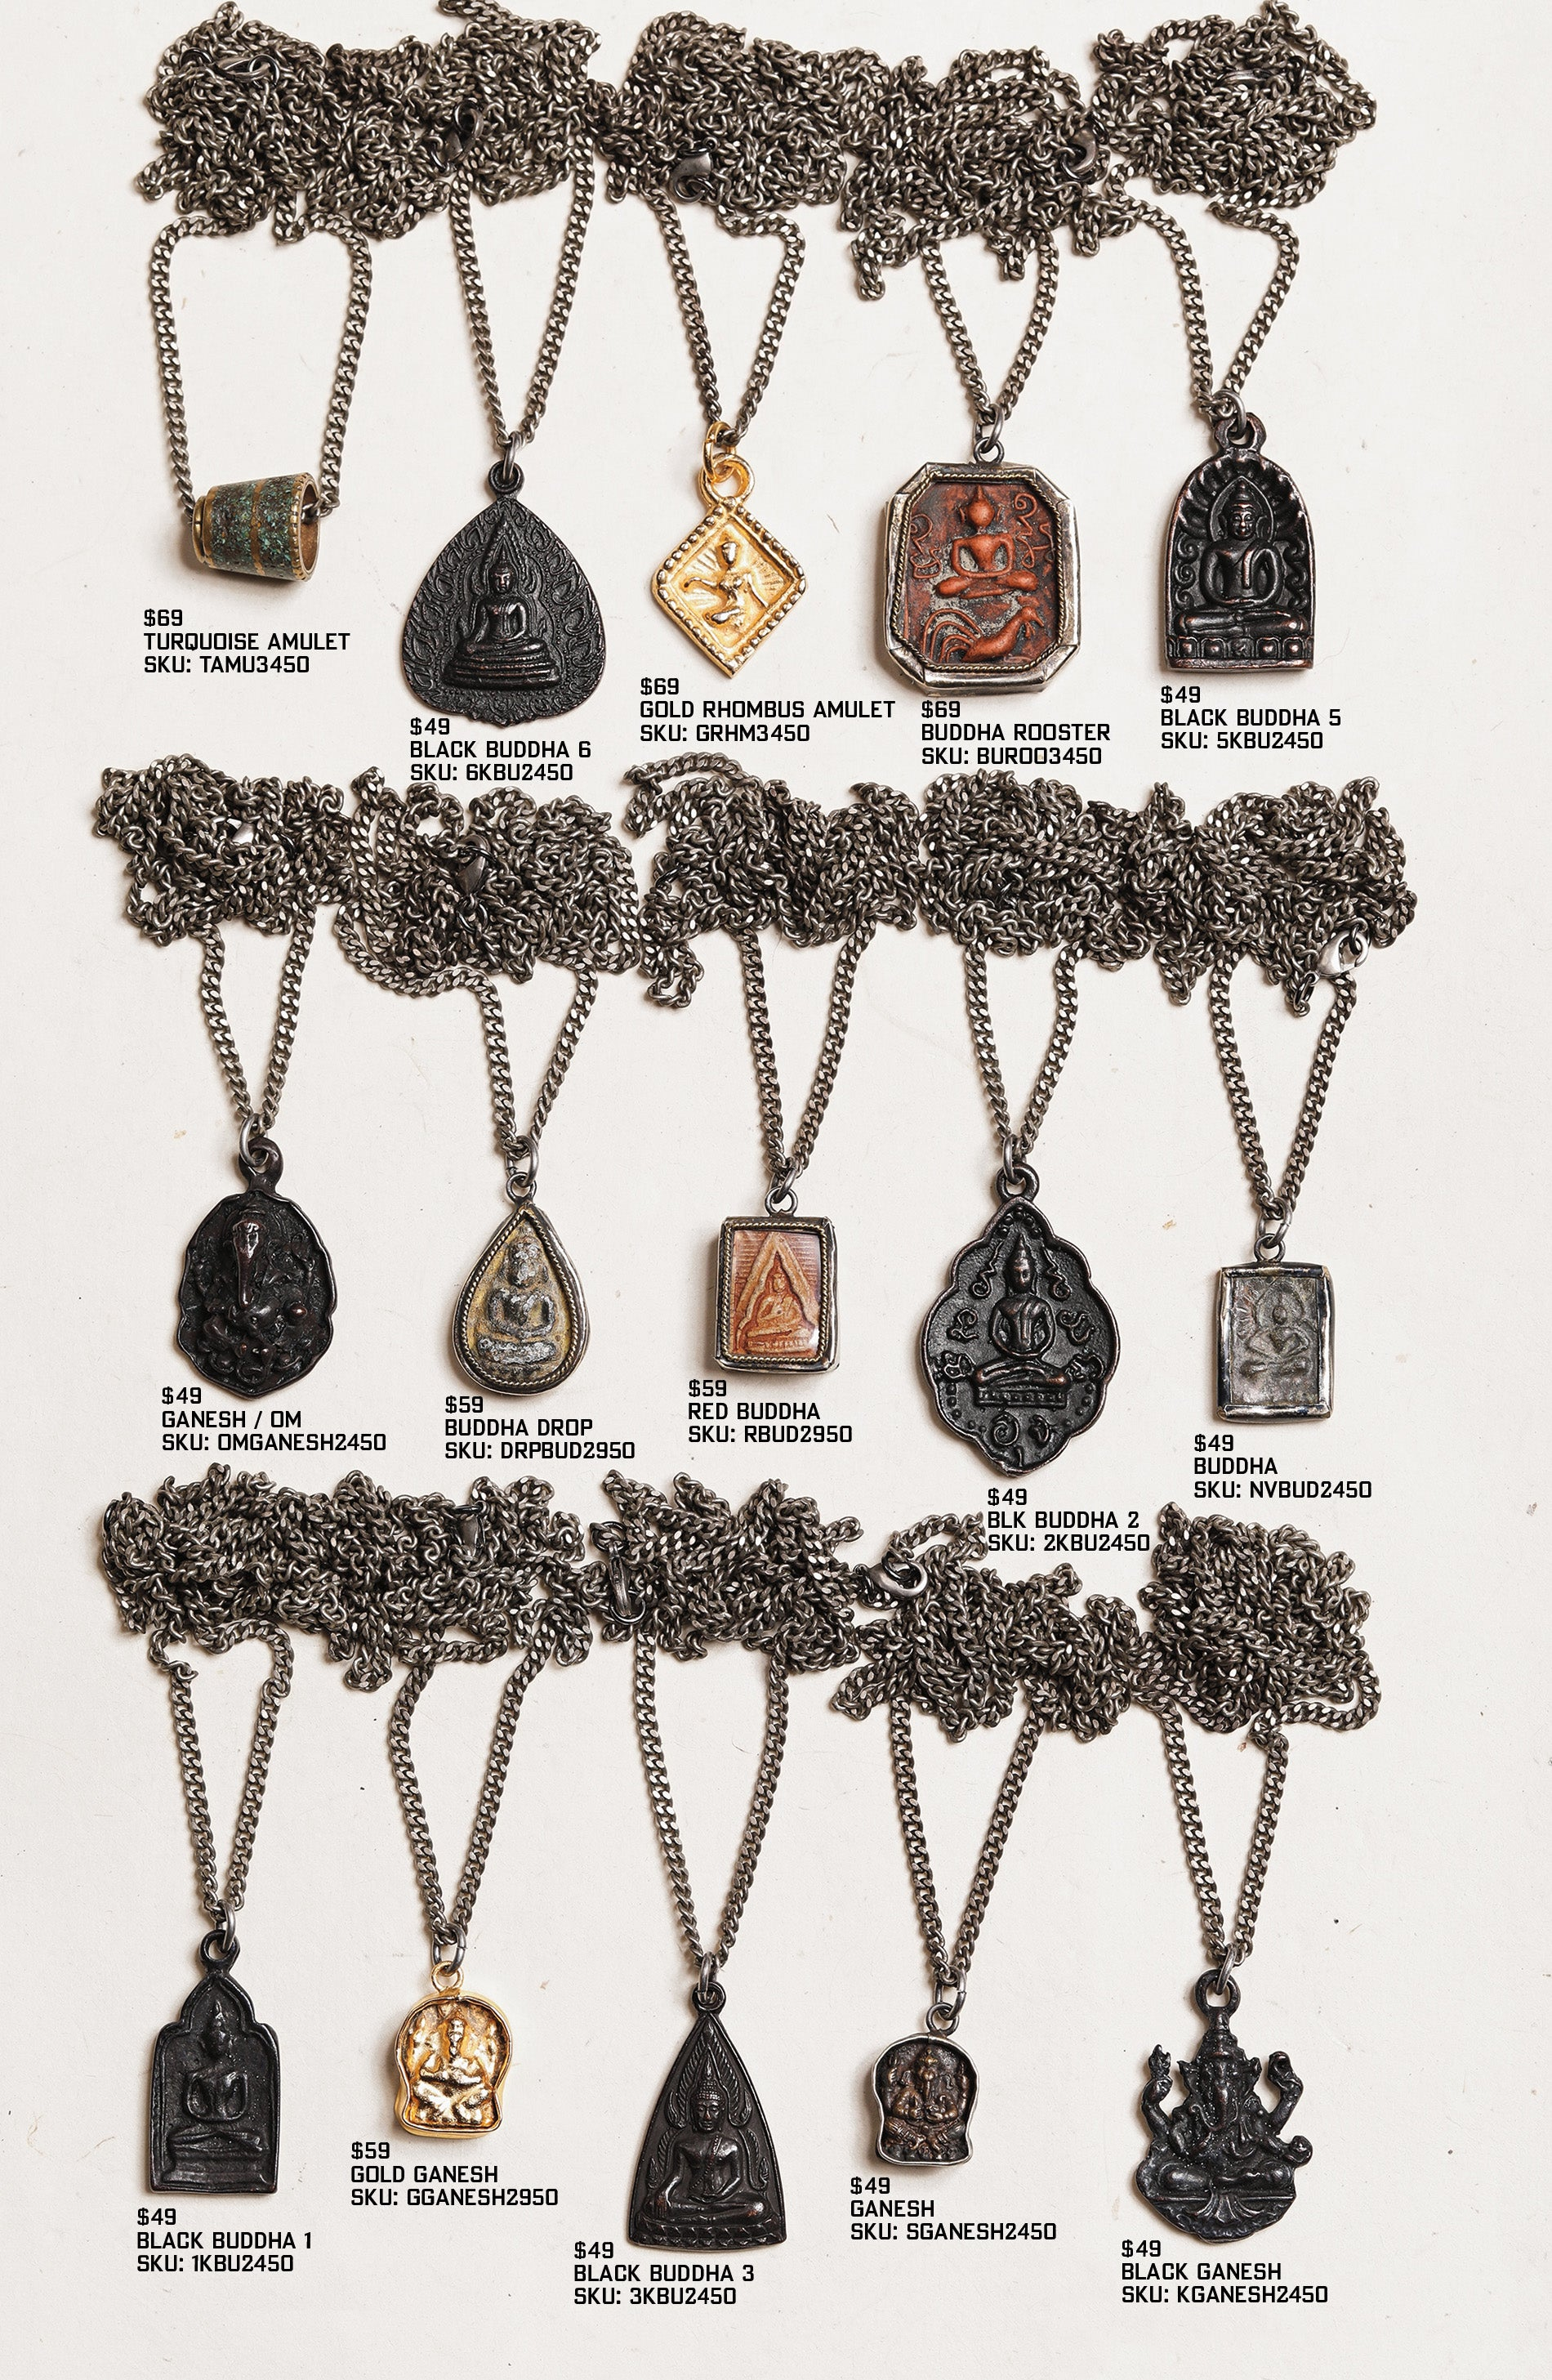 Men's Buddha Amulet Necklaces